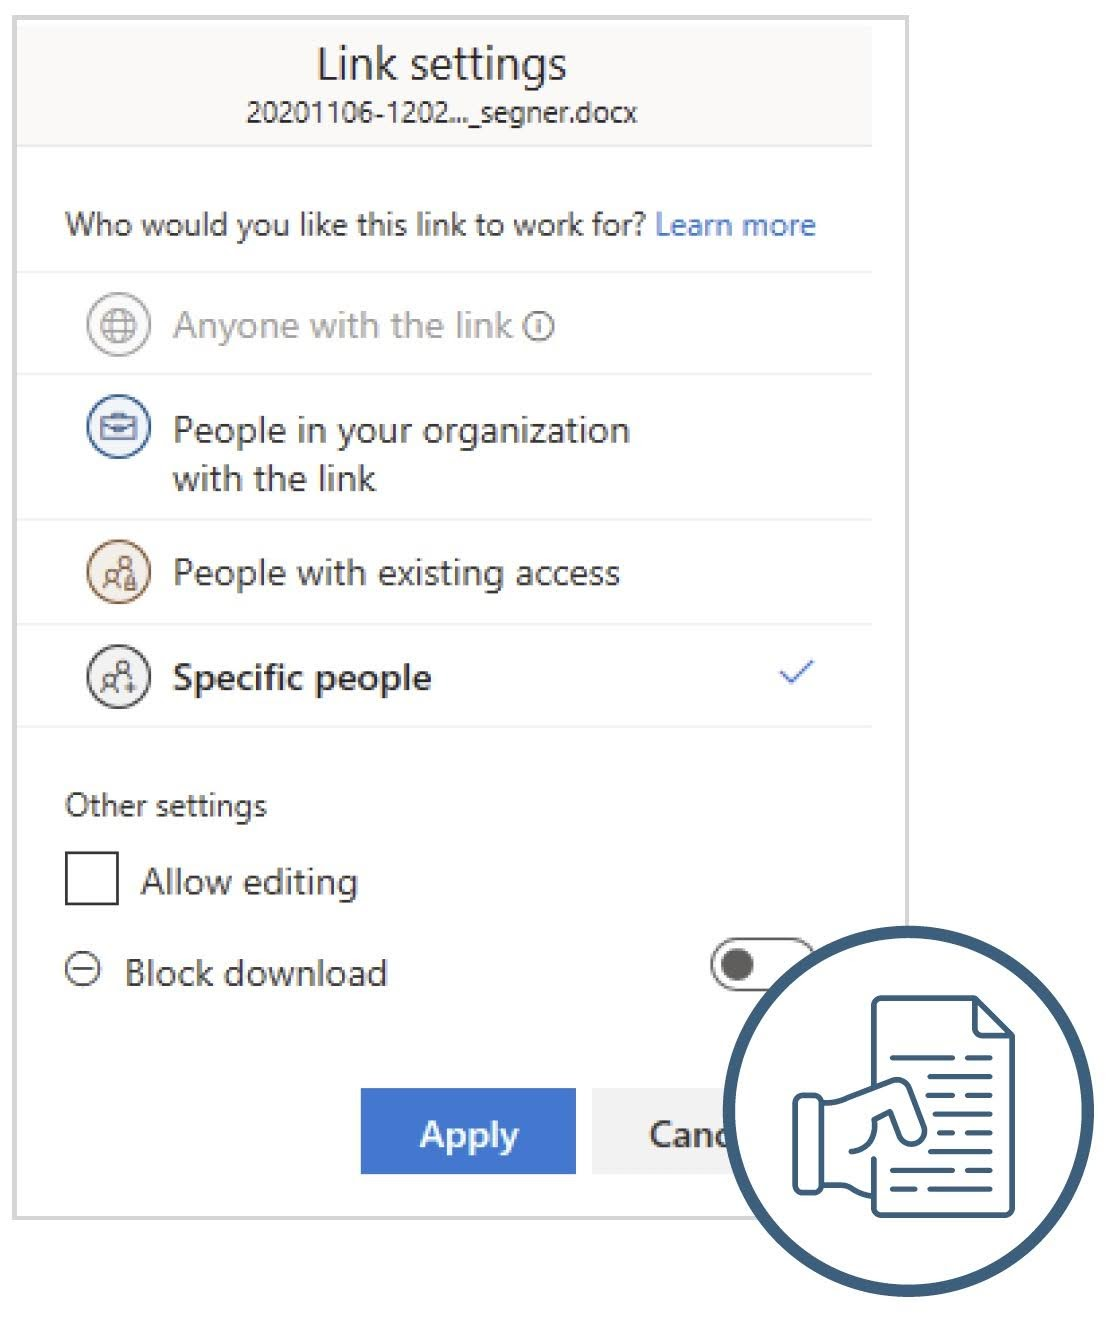 Link settings to work for specific people.